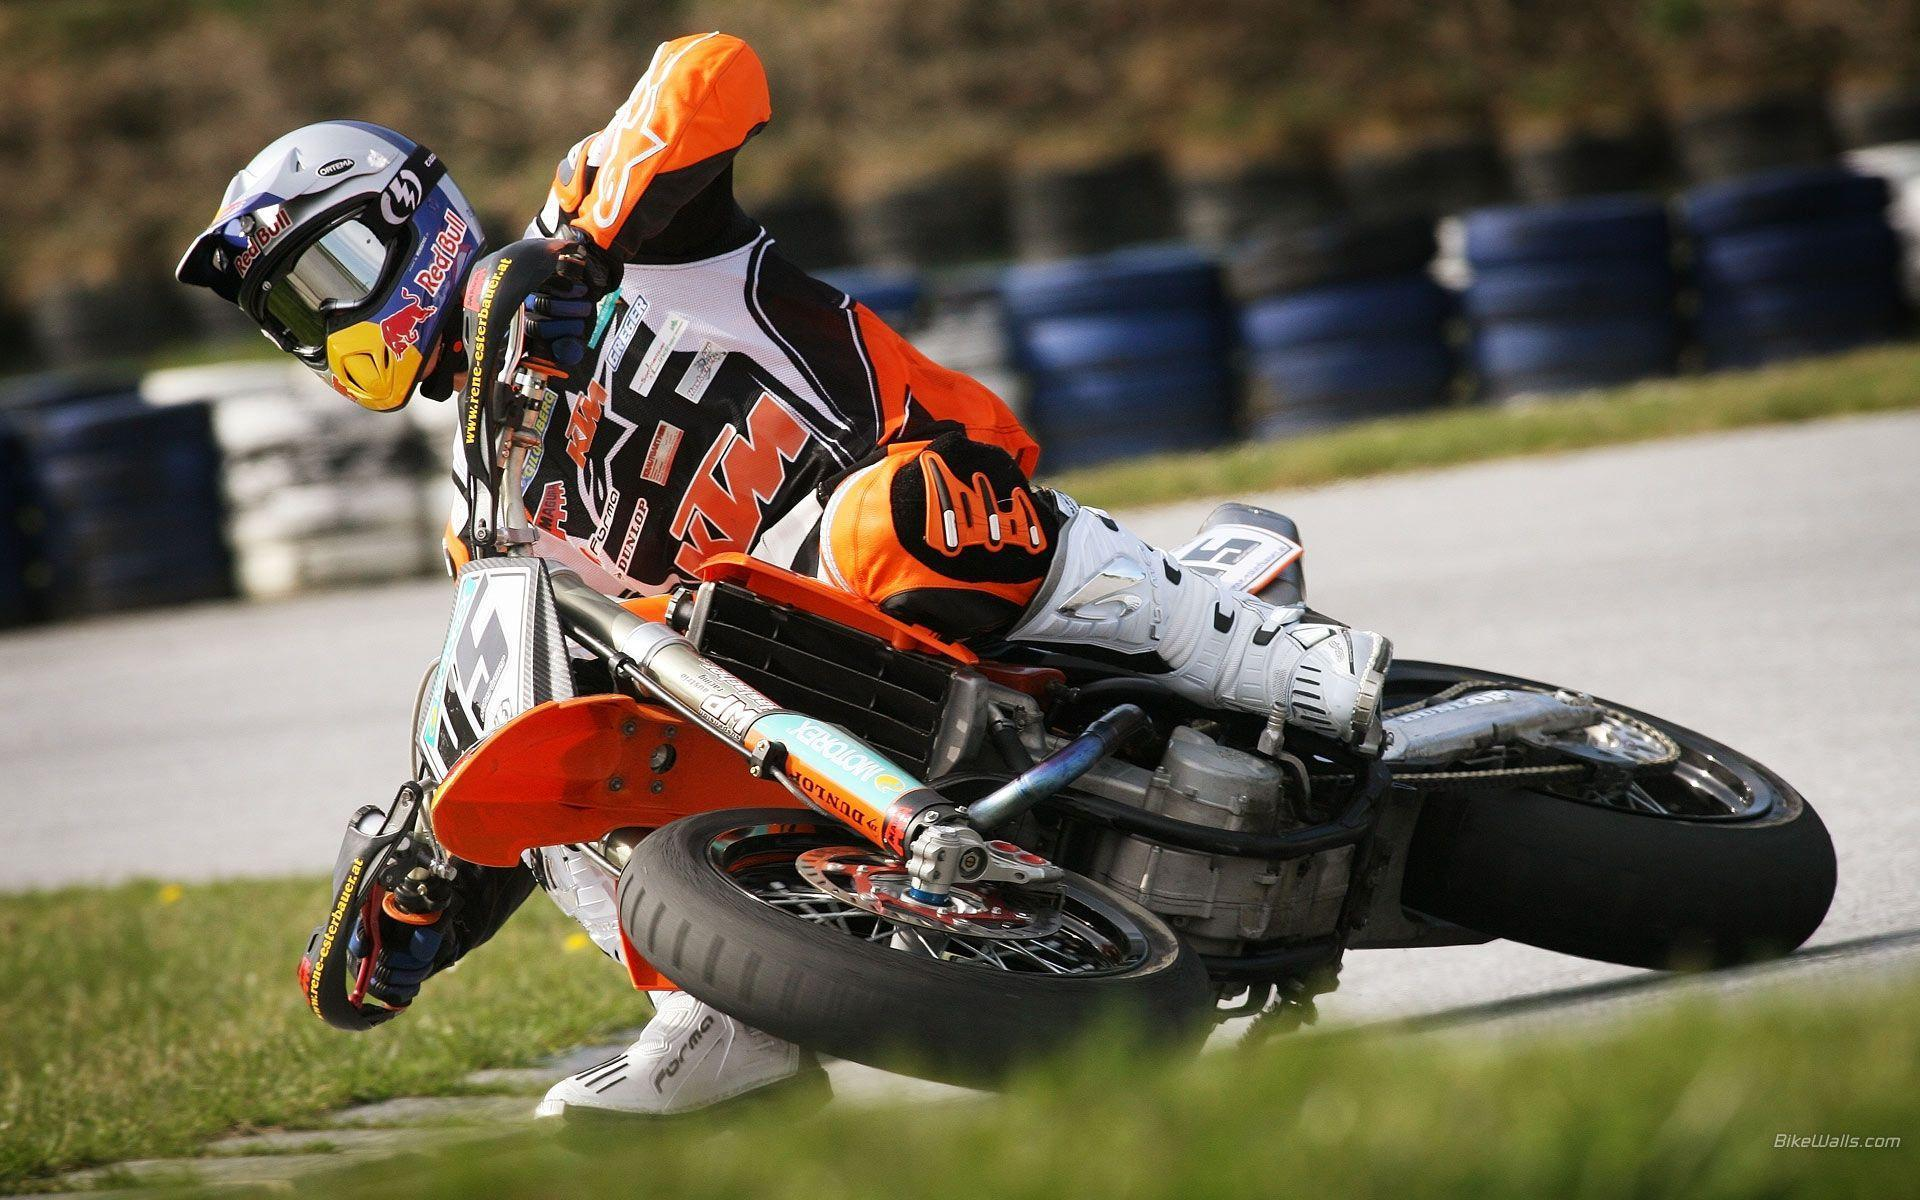 Awesome KTM Supermoto Wallpapers HD 1761 Wallpapers